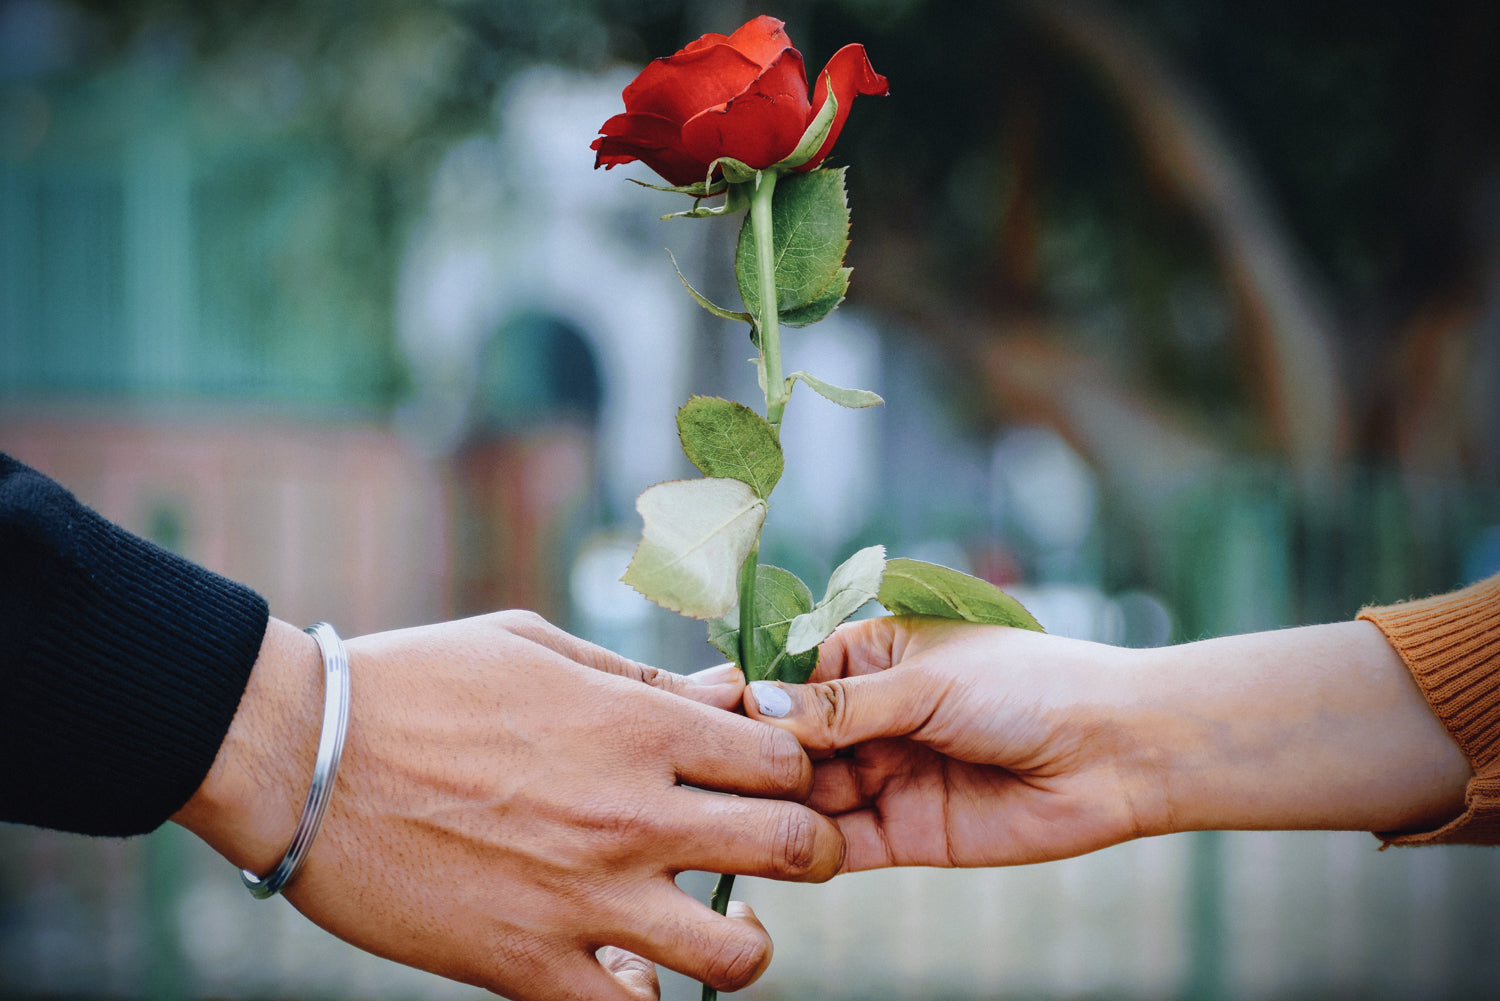 Two hands holding a rose